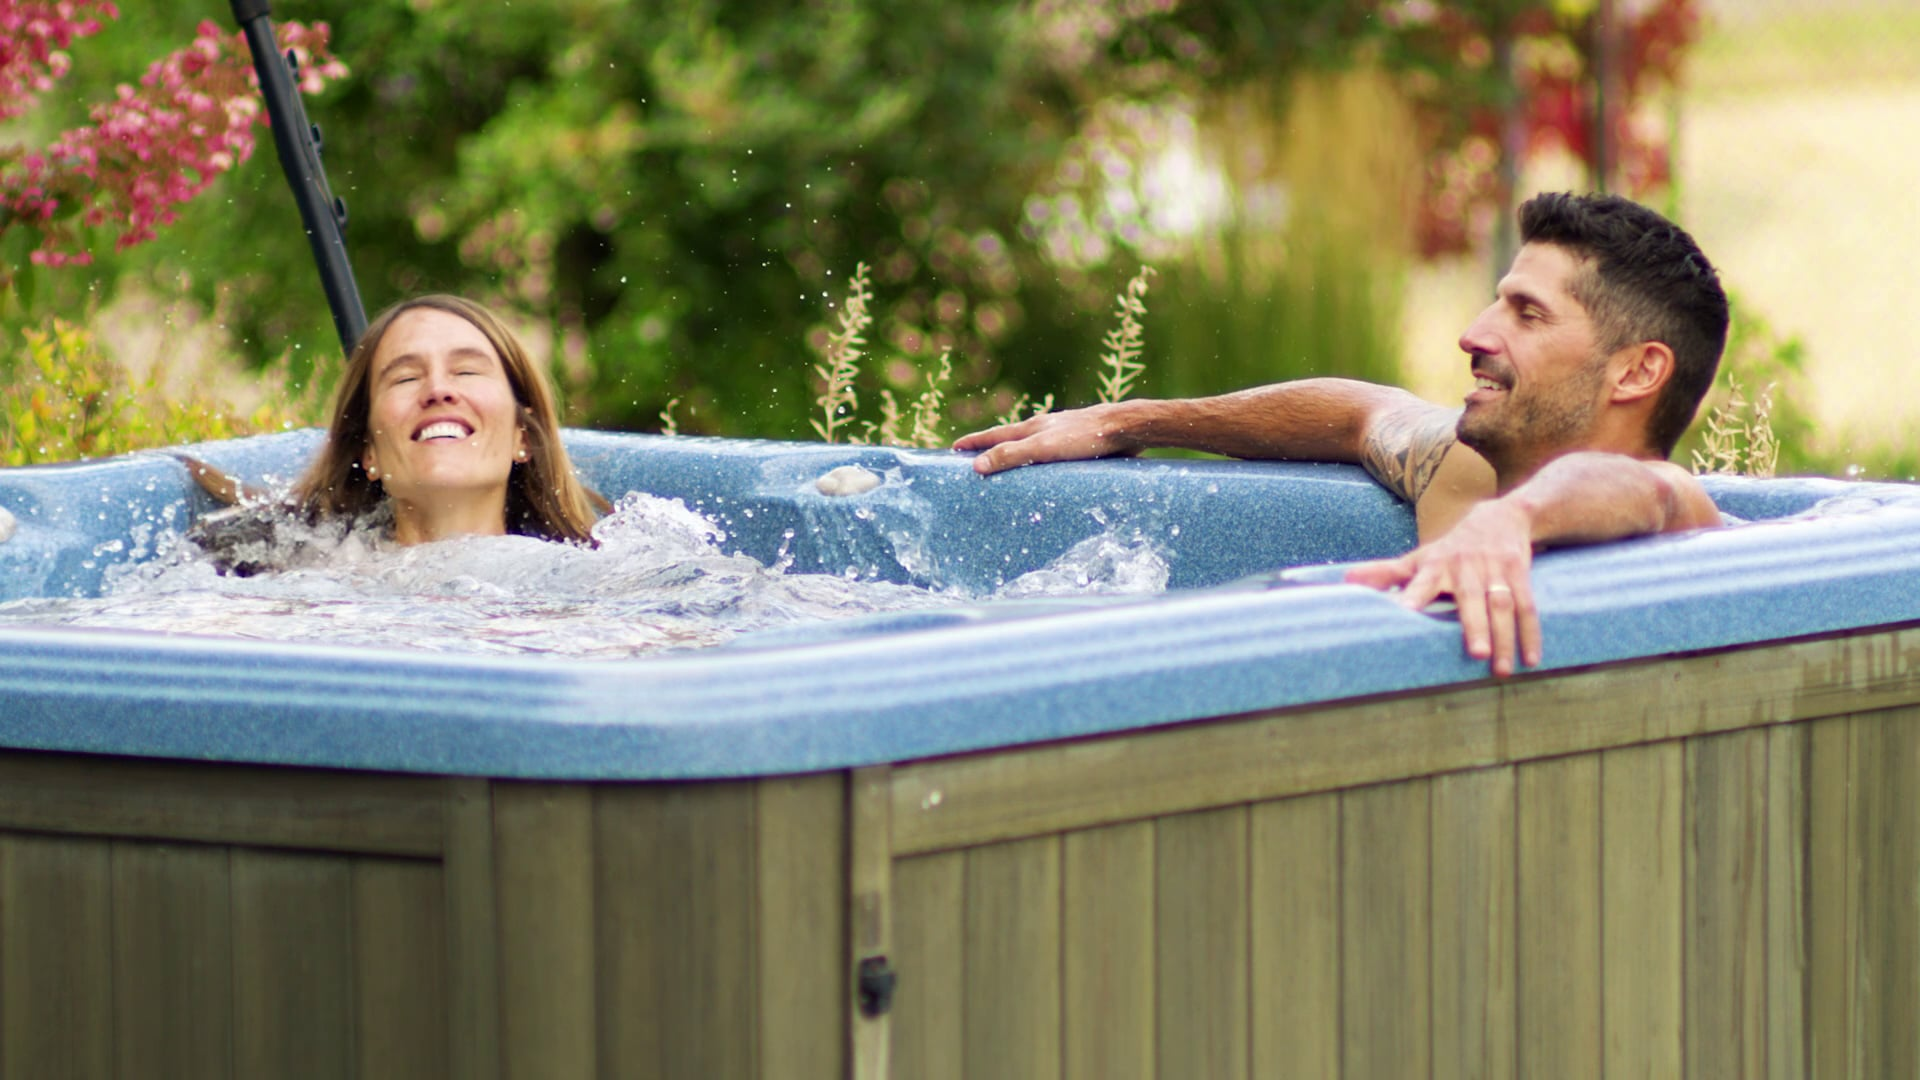 Jacuzzi Pool Service Hot Tub And Spa Services The Pool Service Company